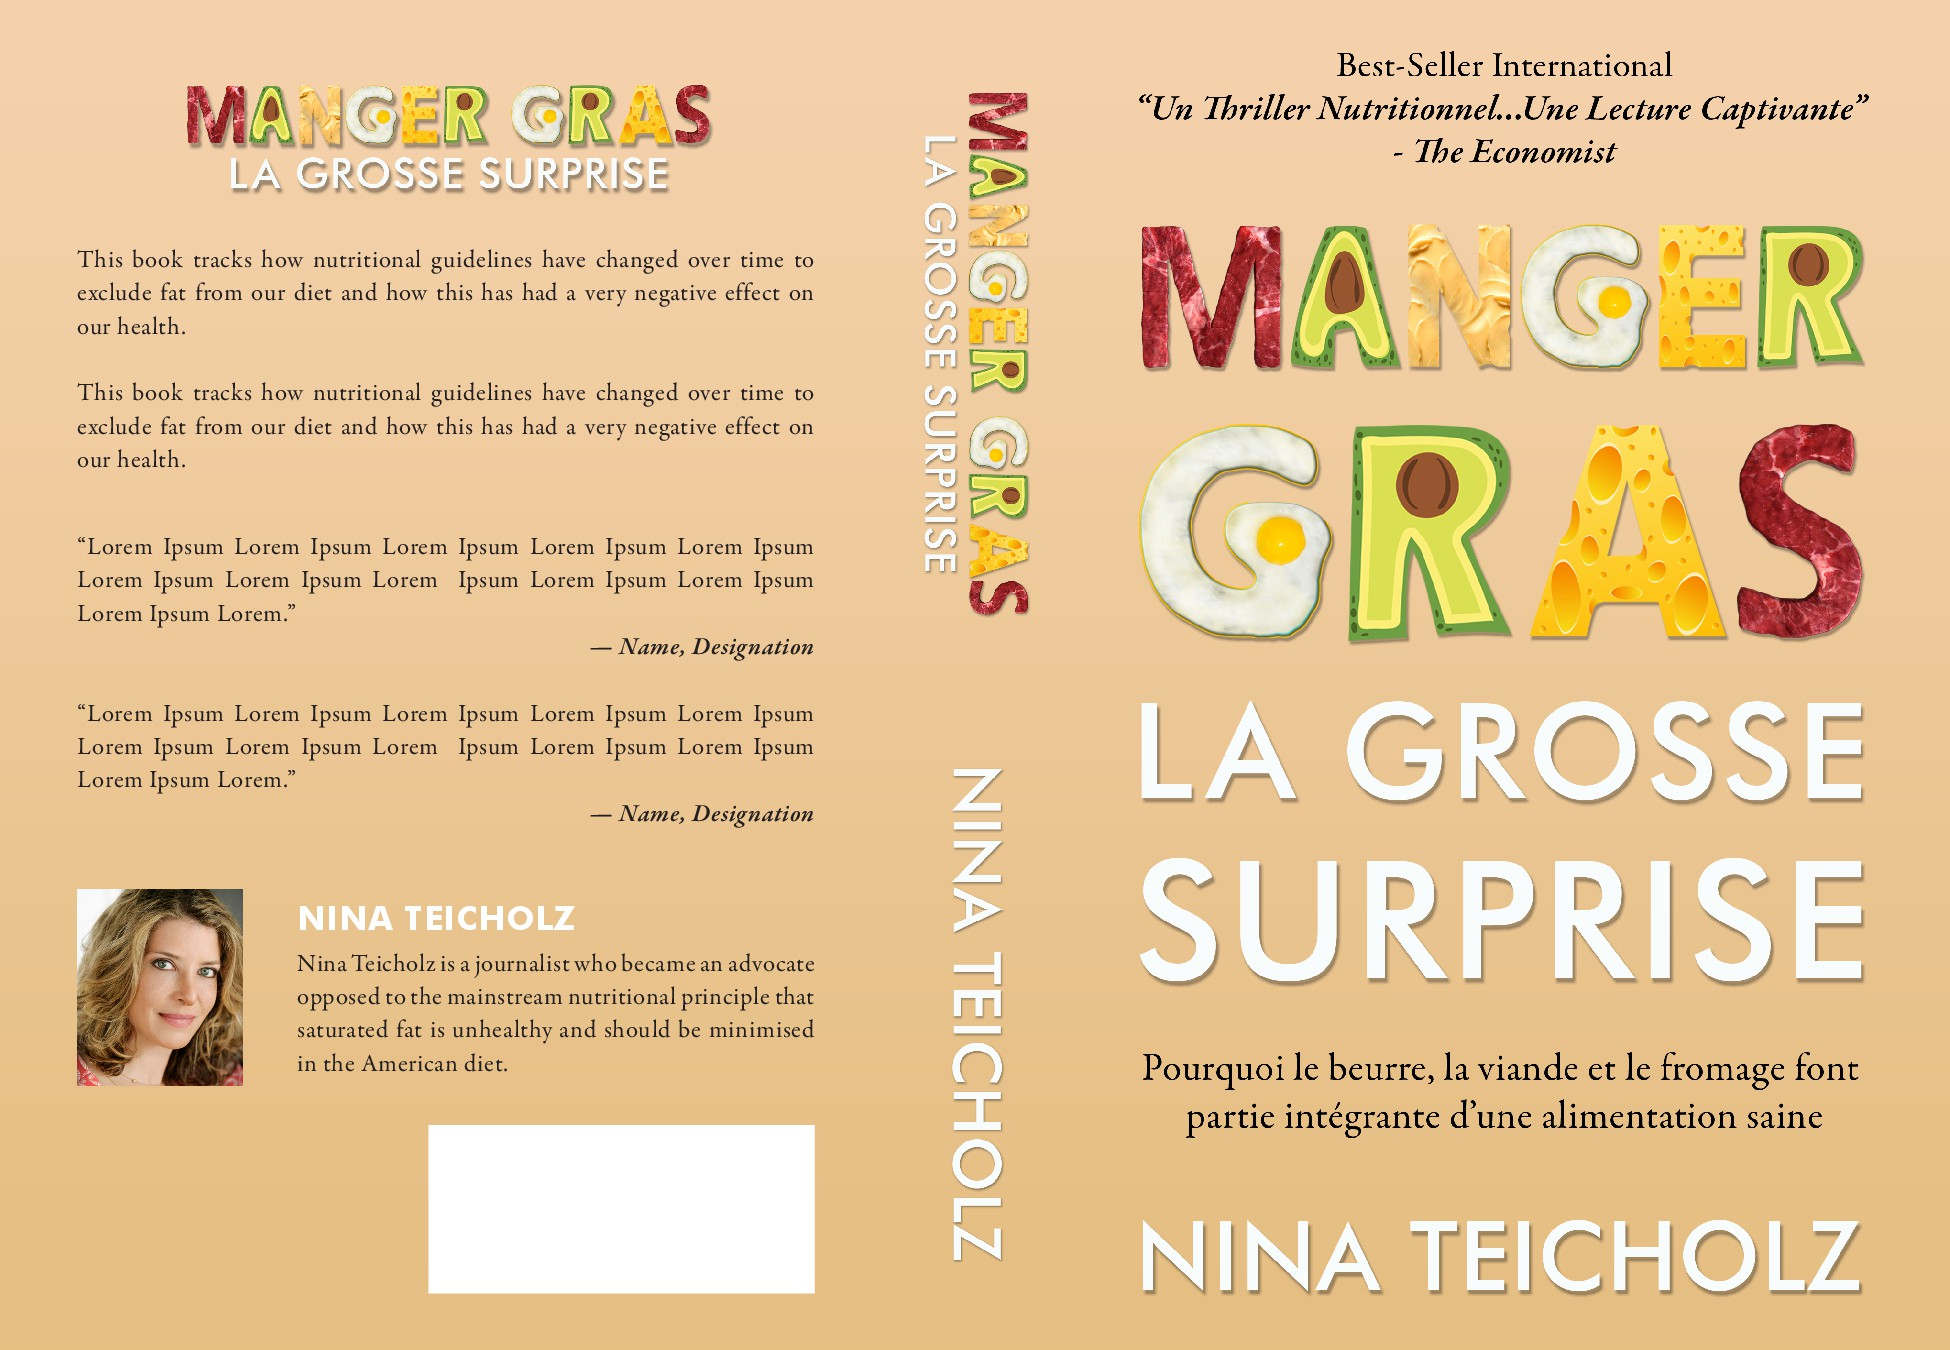 Book cover for Nina Teicholz's French translation of The Big Fat Surprise.